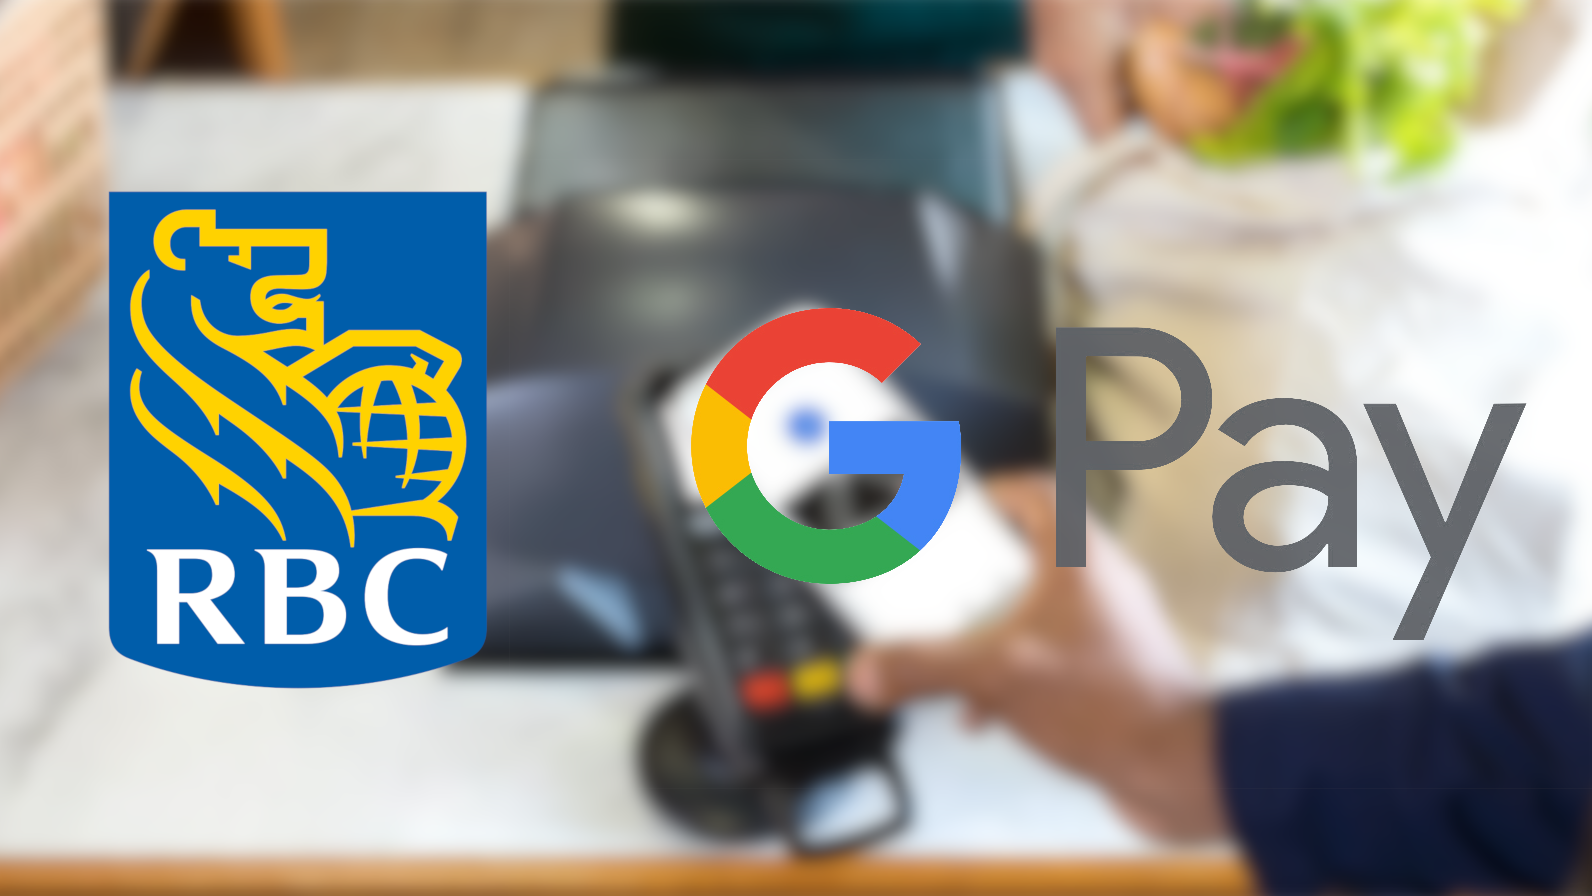 Royal Bank of Canada starts rolling out Google Pay support